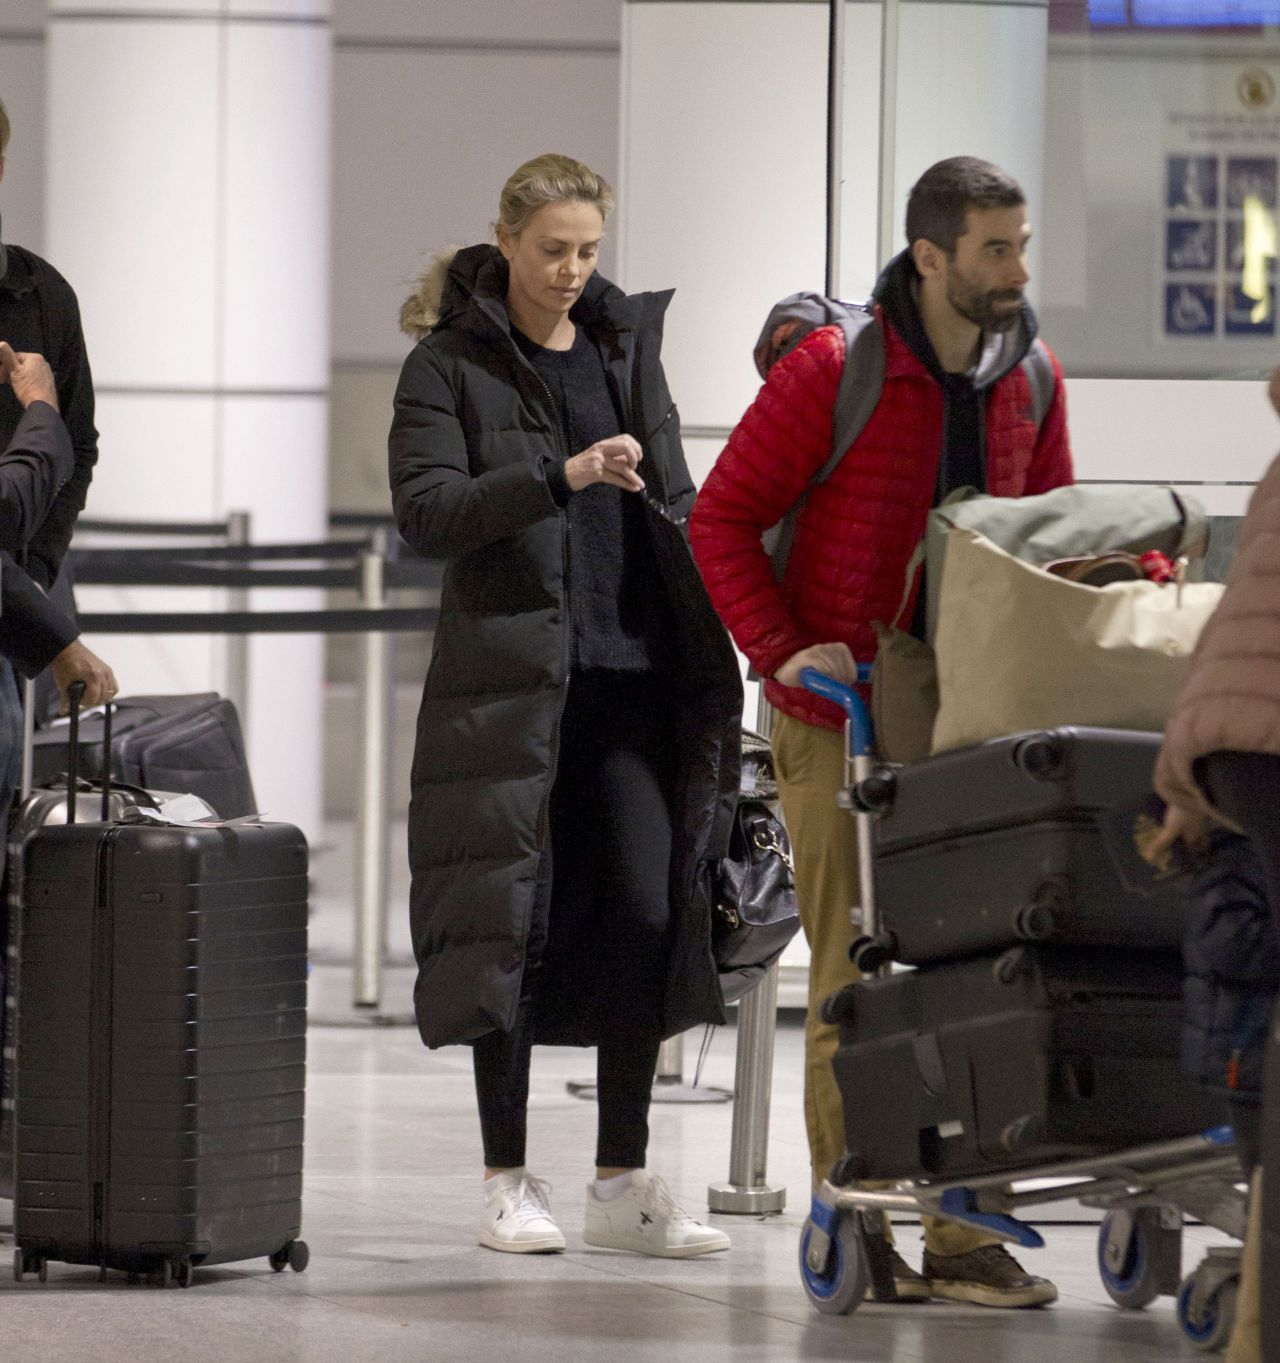 Charlize Theron In Travel Outfit In Montreal 01 11 2018